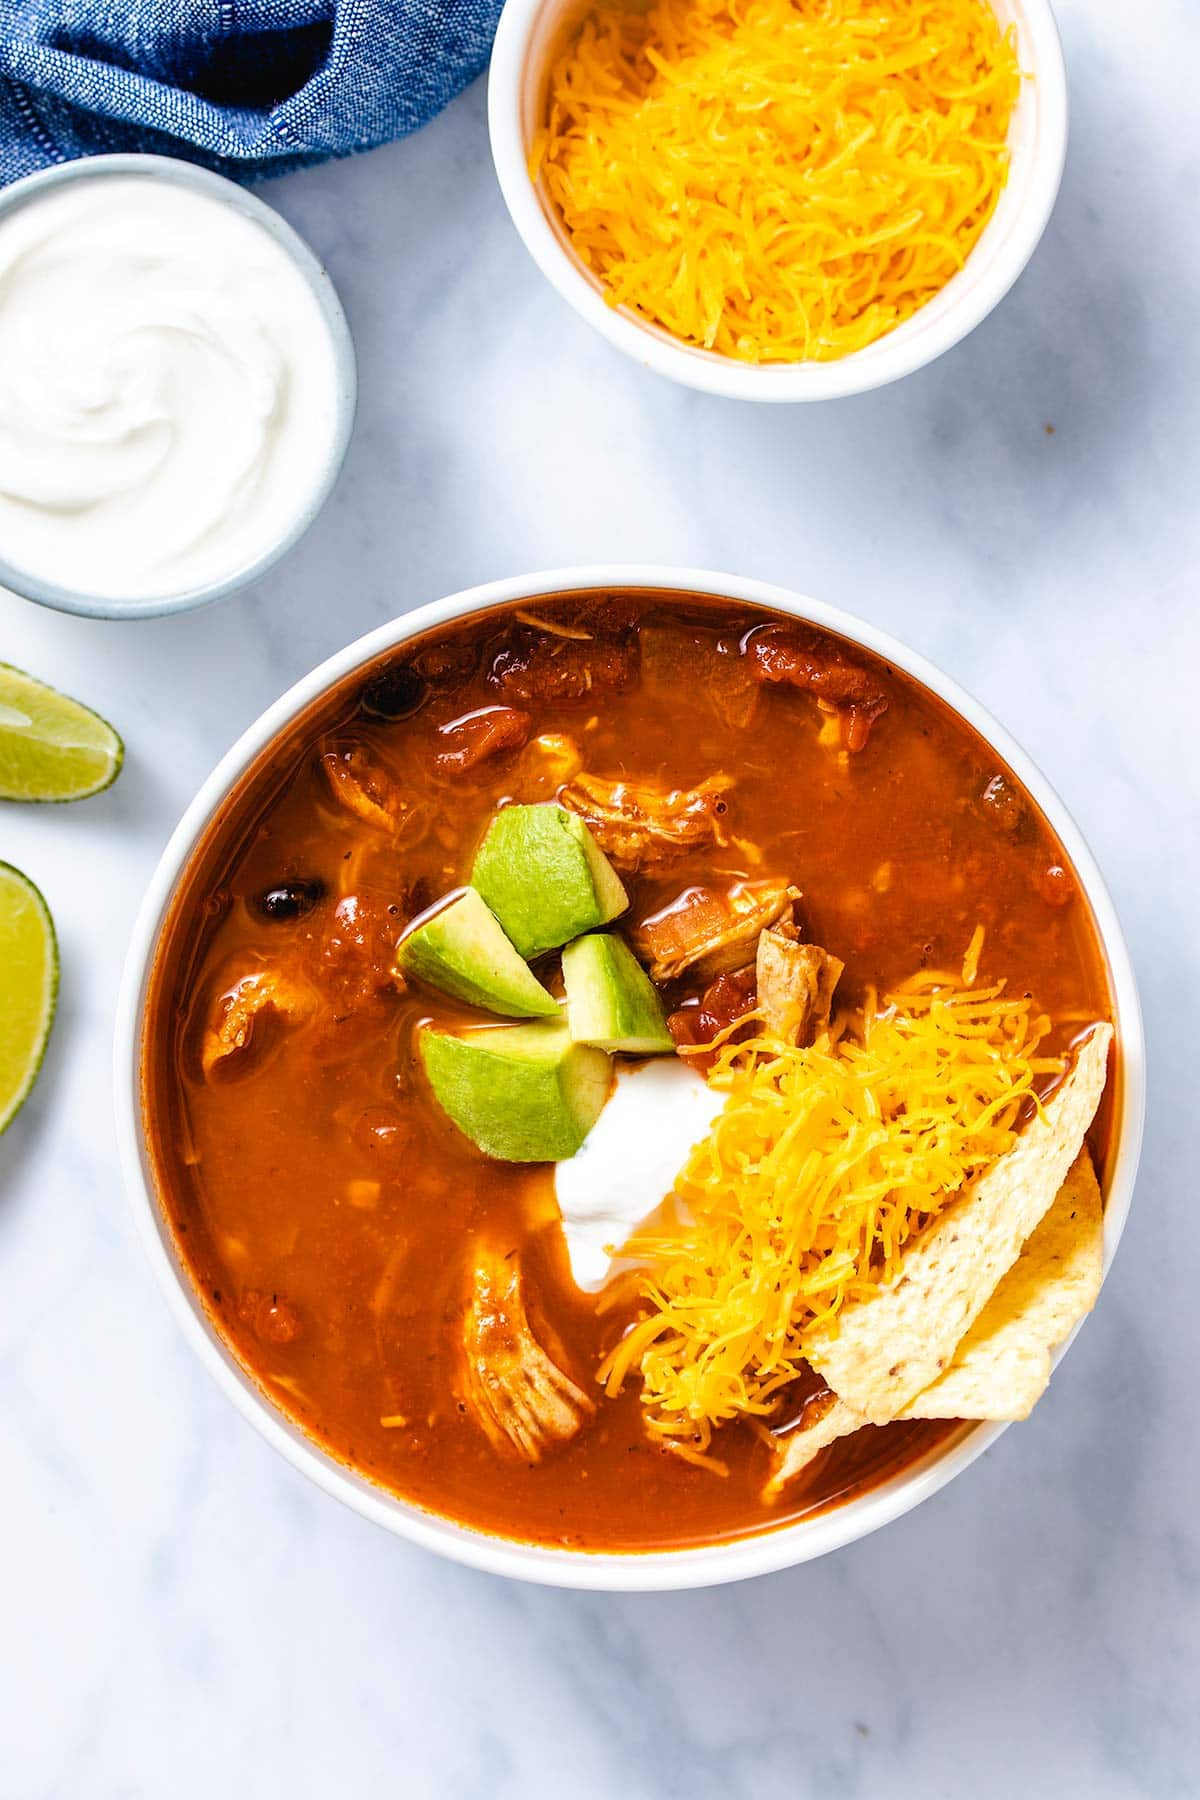 chicken enchilada soup in a white bowl garnished with diced avocado, sour cream, grated cheese and corn chips next to lime wedges and small bowls of grated cheese and sour cream